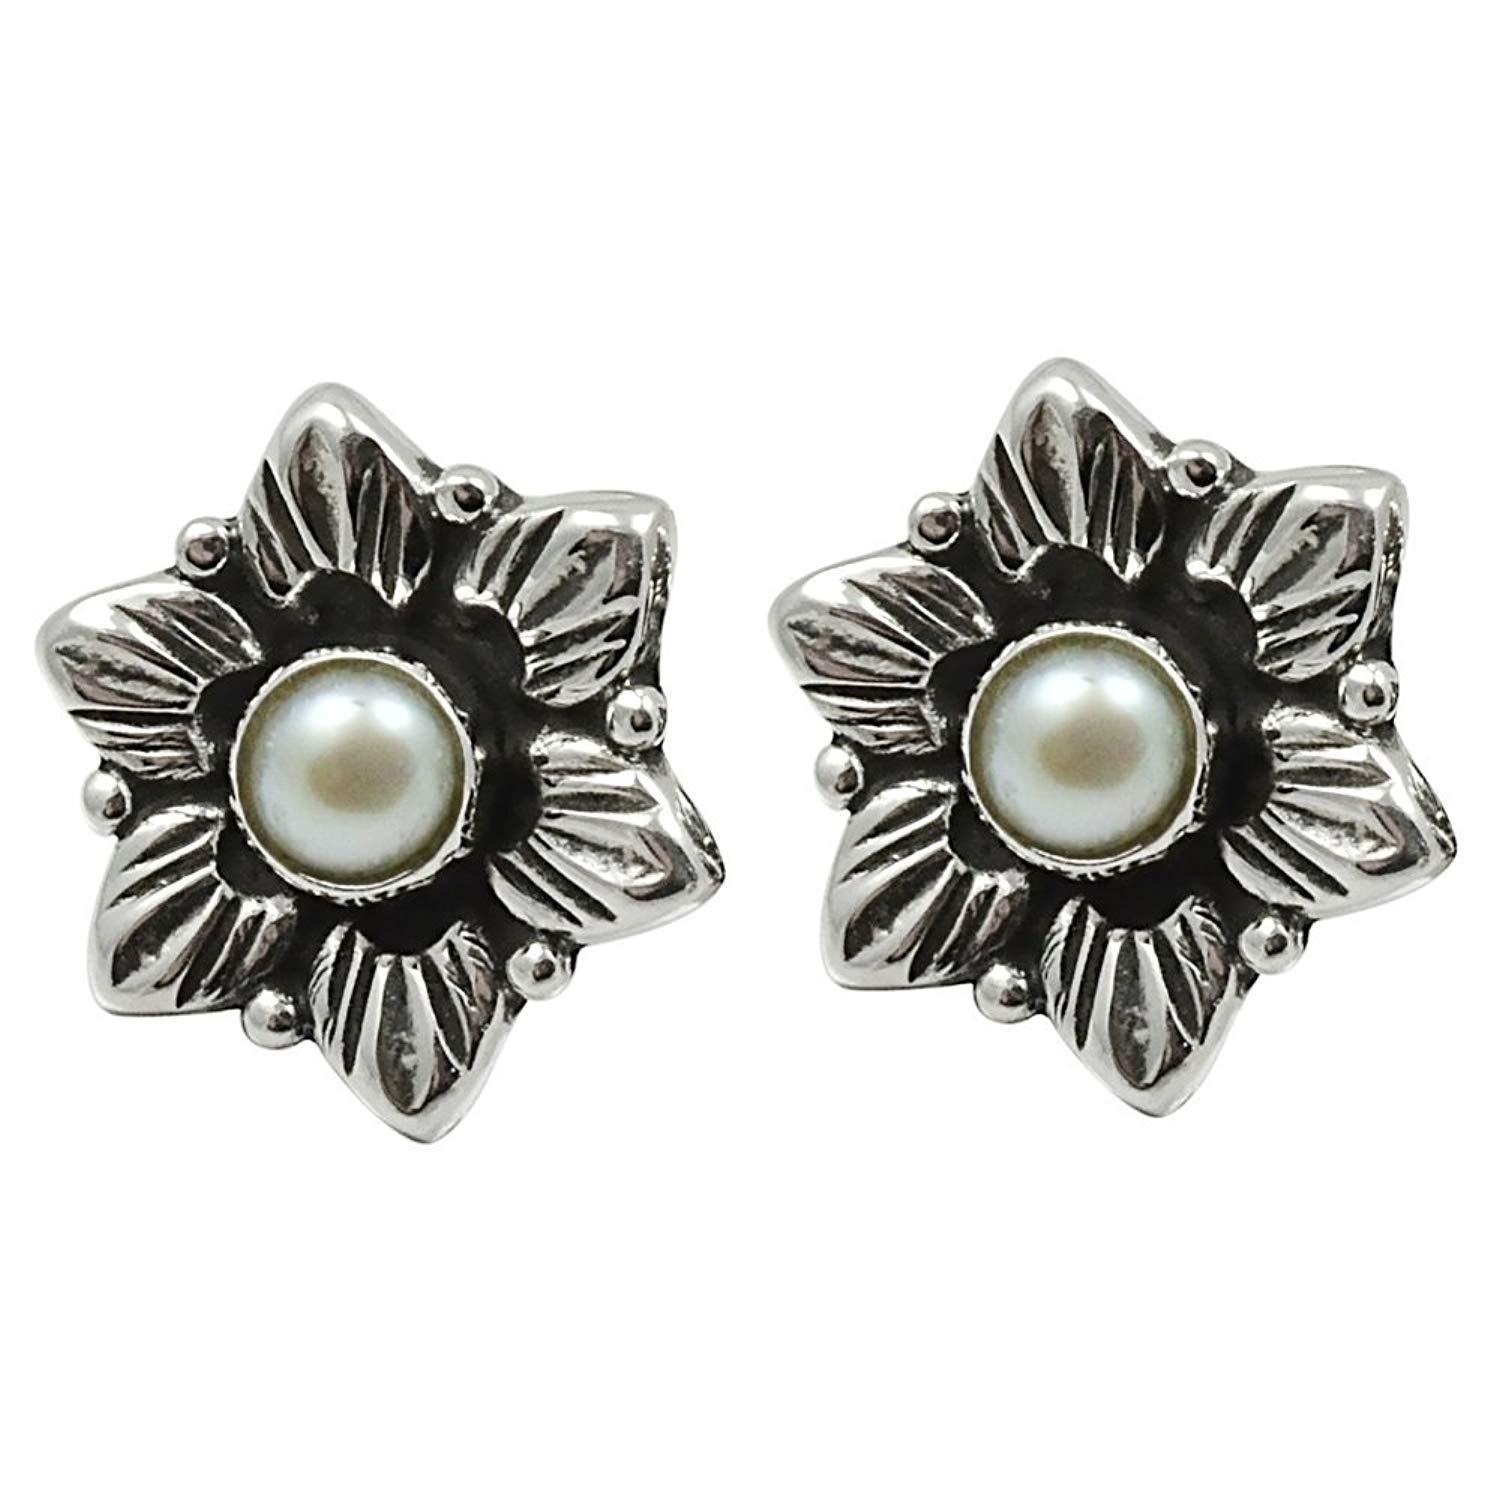 6.5 Carat Solid 925 Sterling Silver Handmade Natural Welo Fire Ethiopan pearl Earring 5x5mm 0.70x0.62inch SN-E-1685